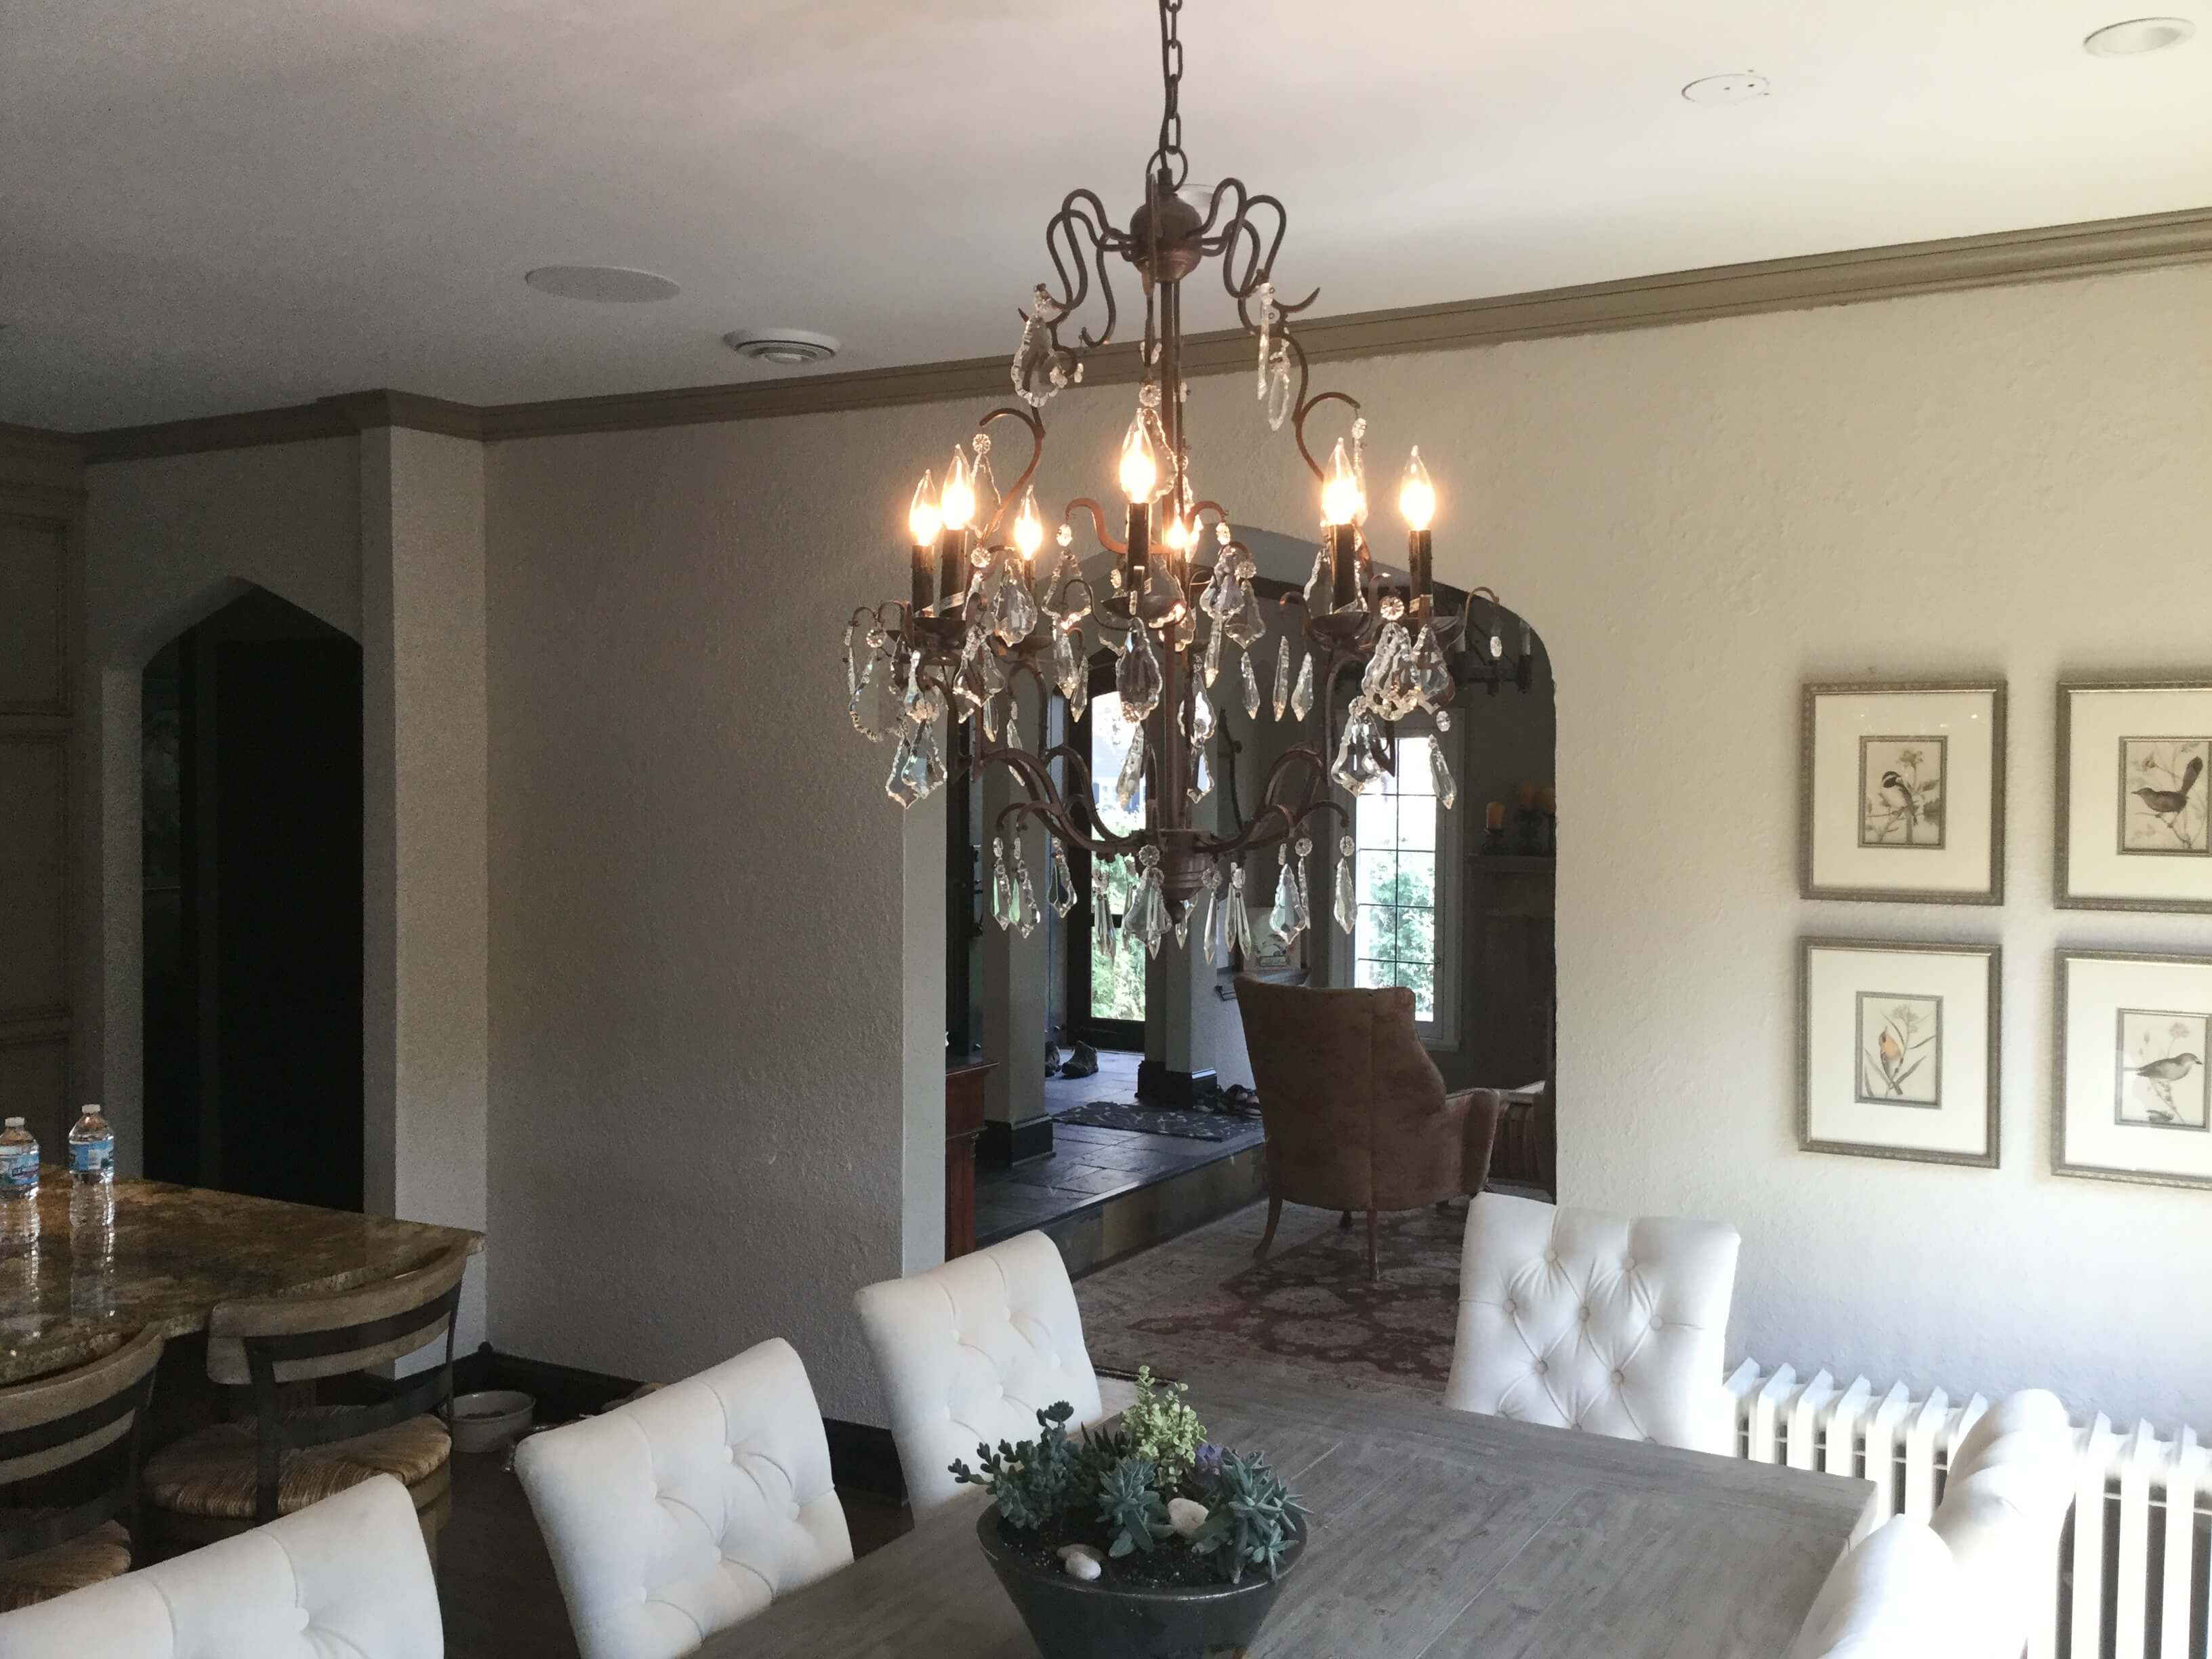 Restoration Hardware Light Install 3